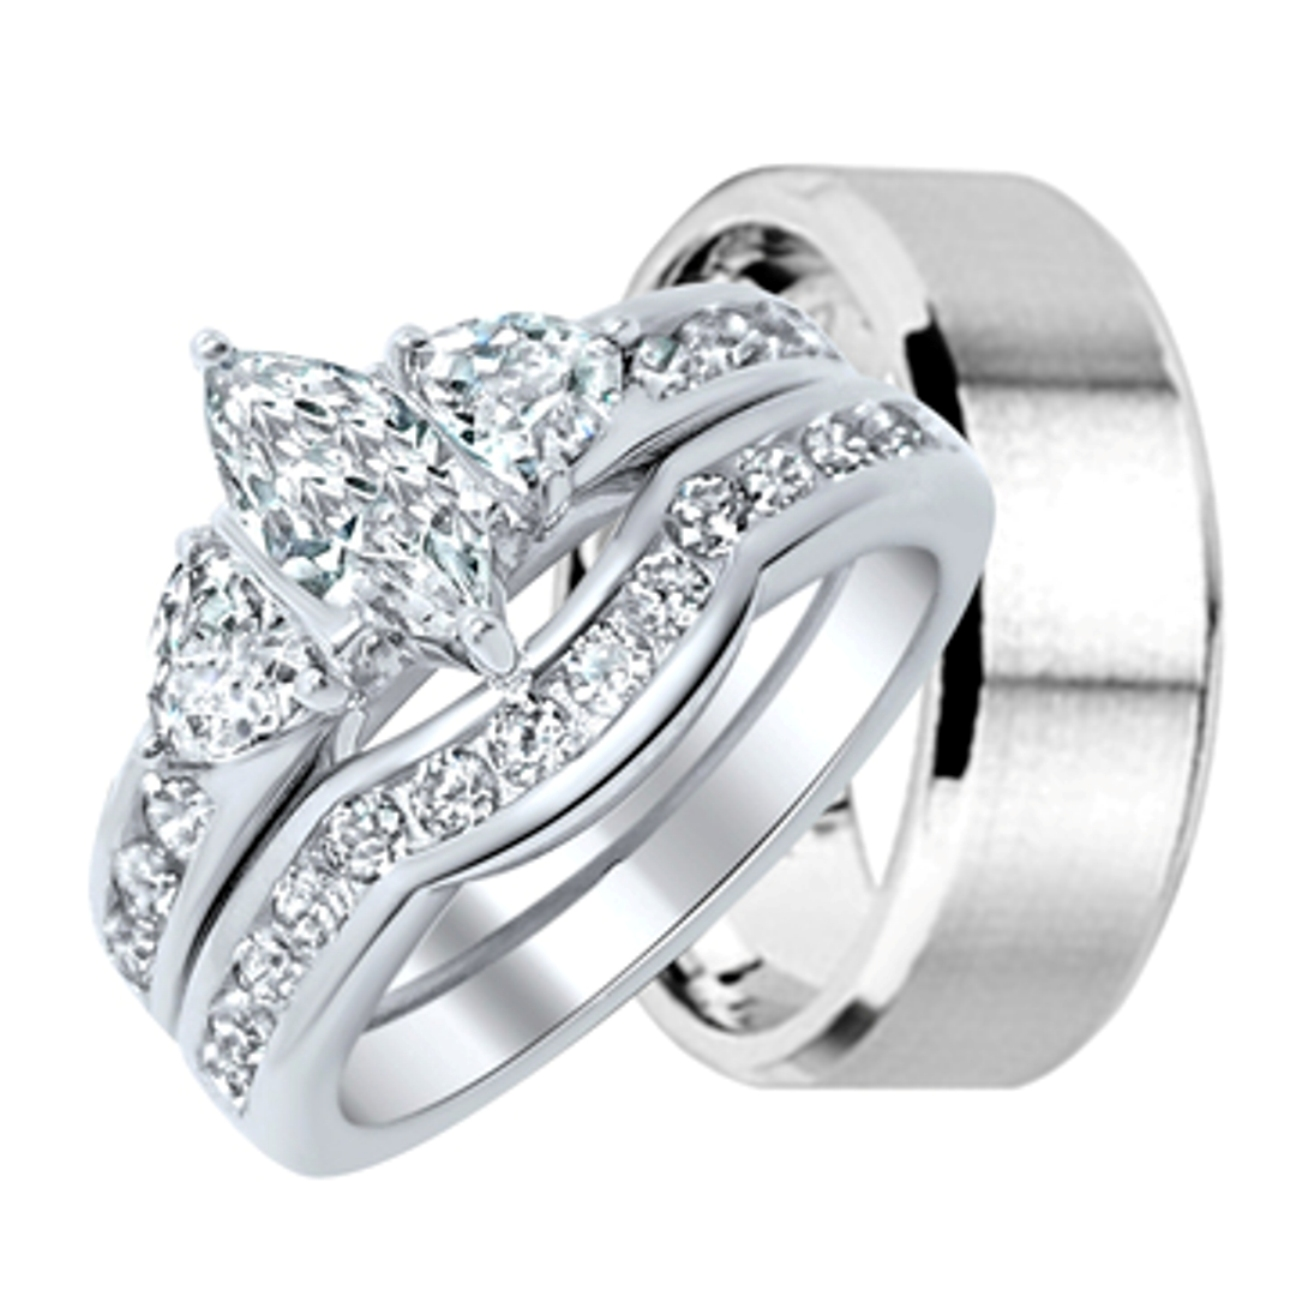 His And Hers Wedding Ring Set Matching Wedding Bands For Him And Her (7/8)  (Choose Sizes)   Walmart.com